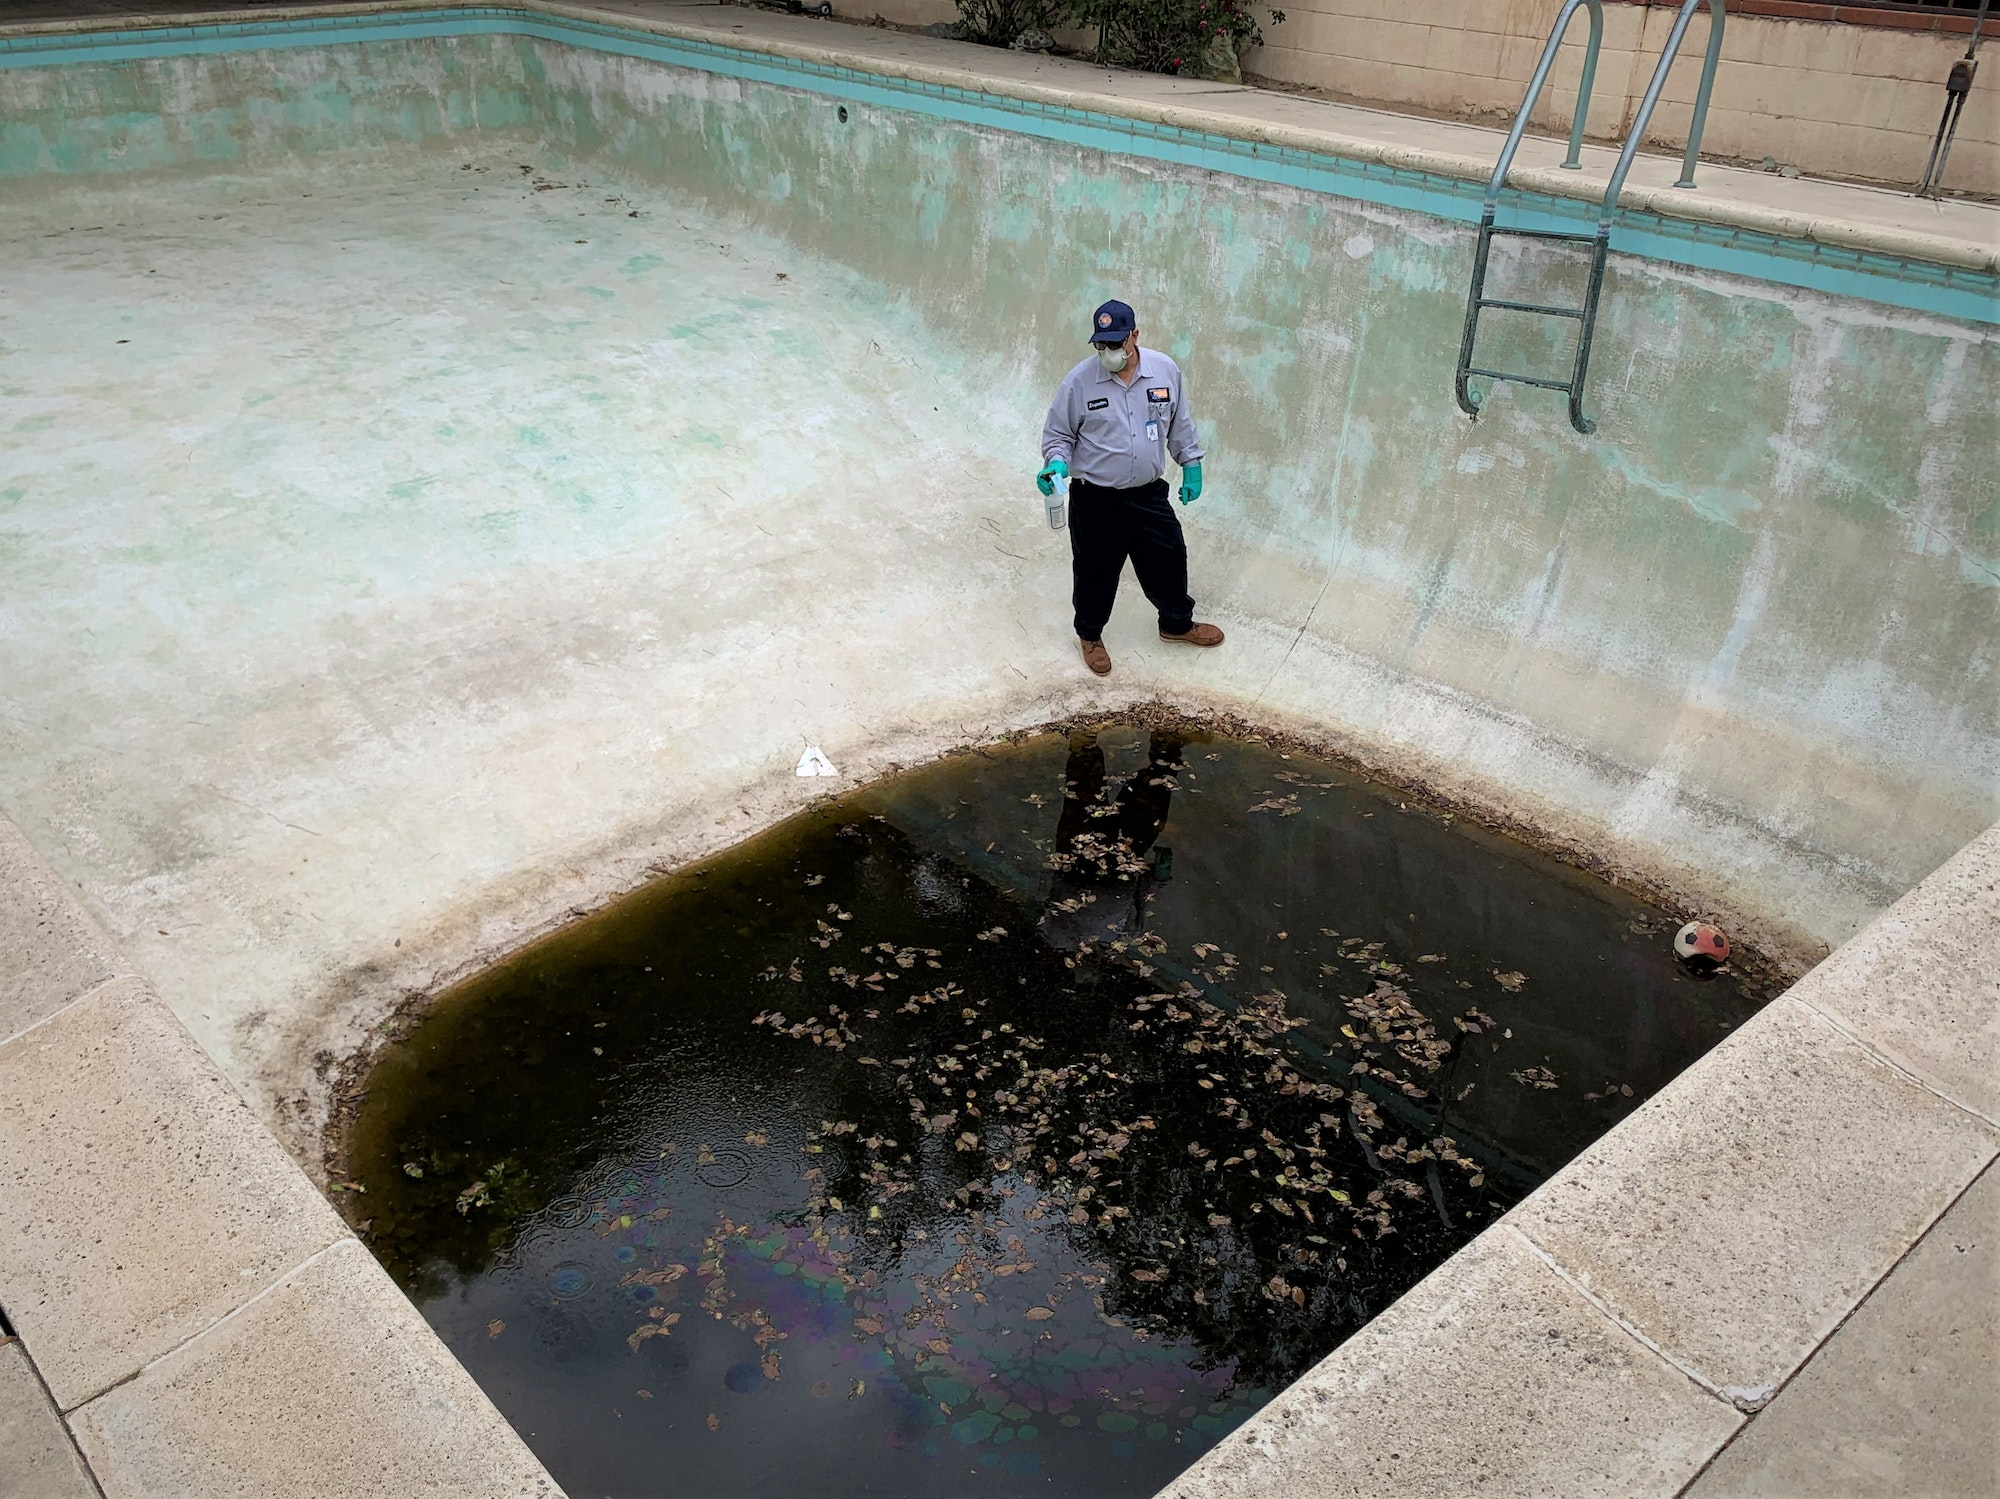 May contain: person, green pool, spray bottle, half empty pool, and stairs